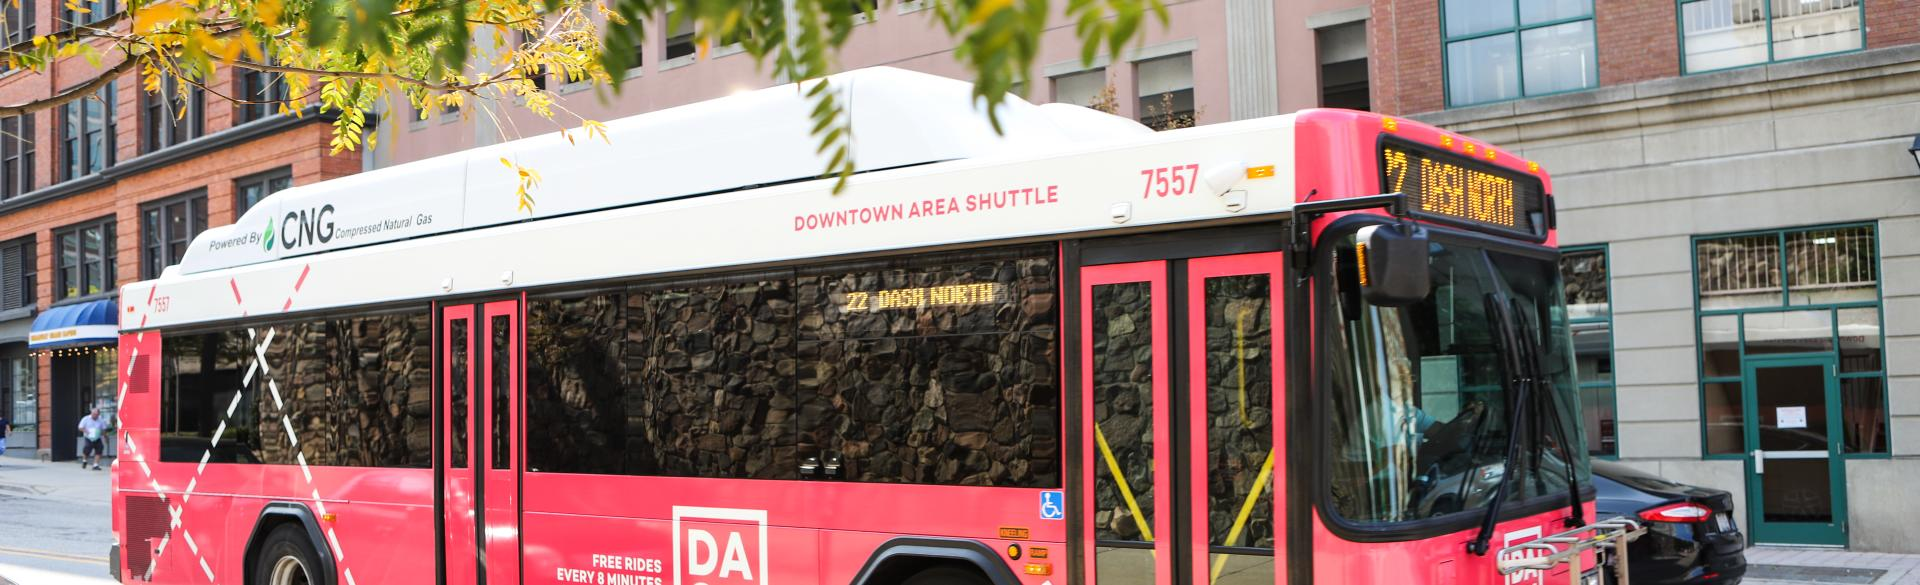 Bright pink color makes the DASH buses easy to spot.